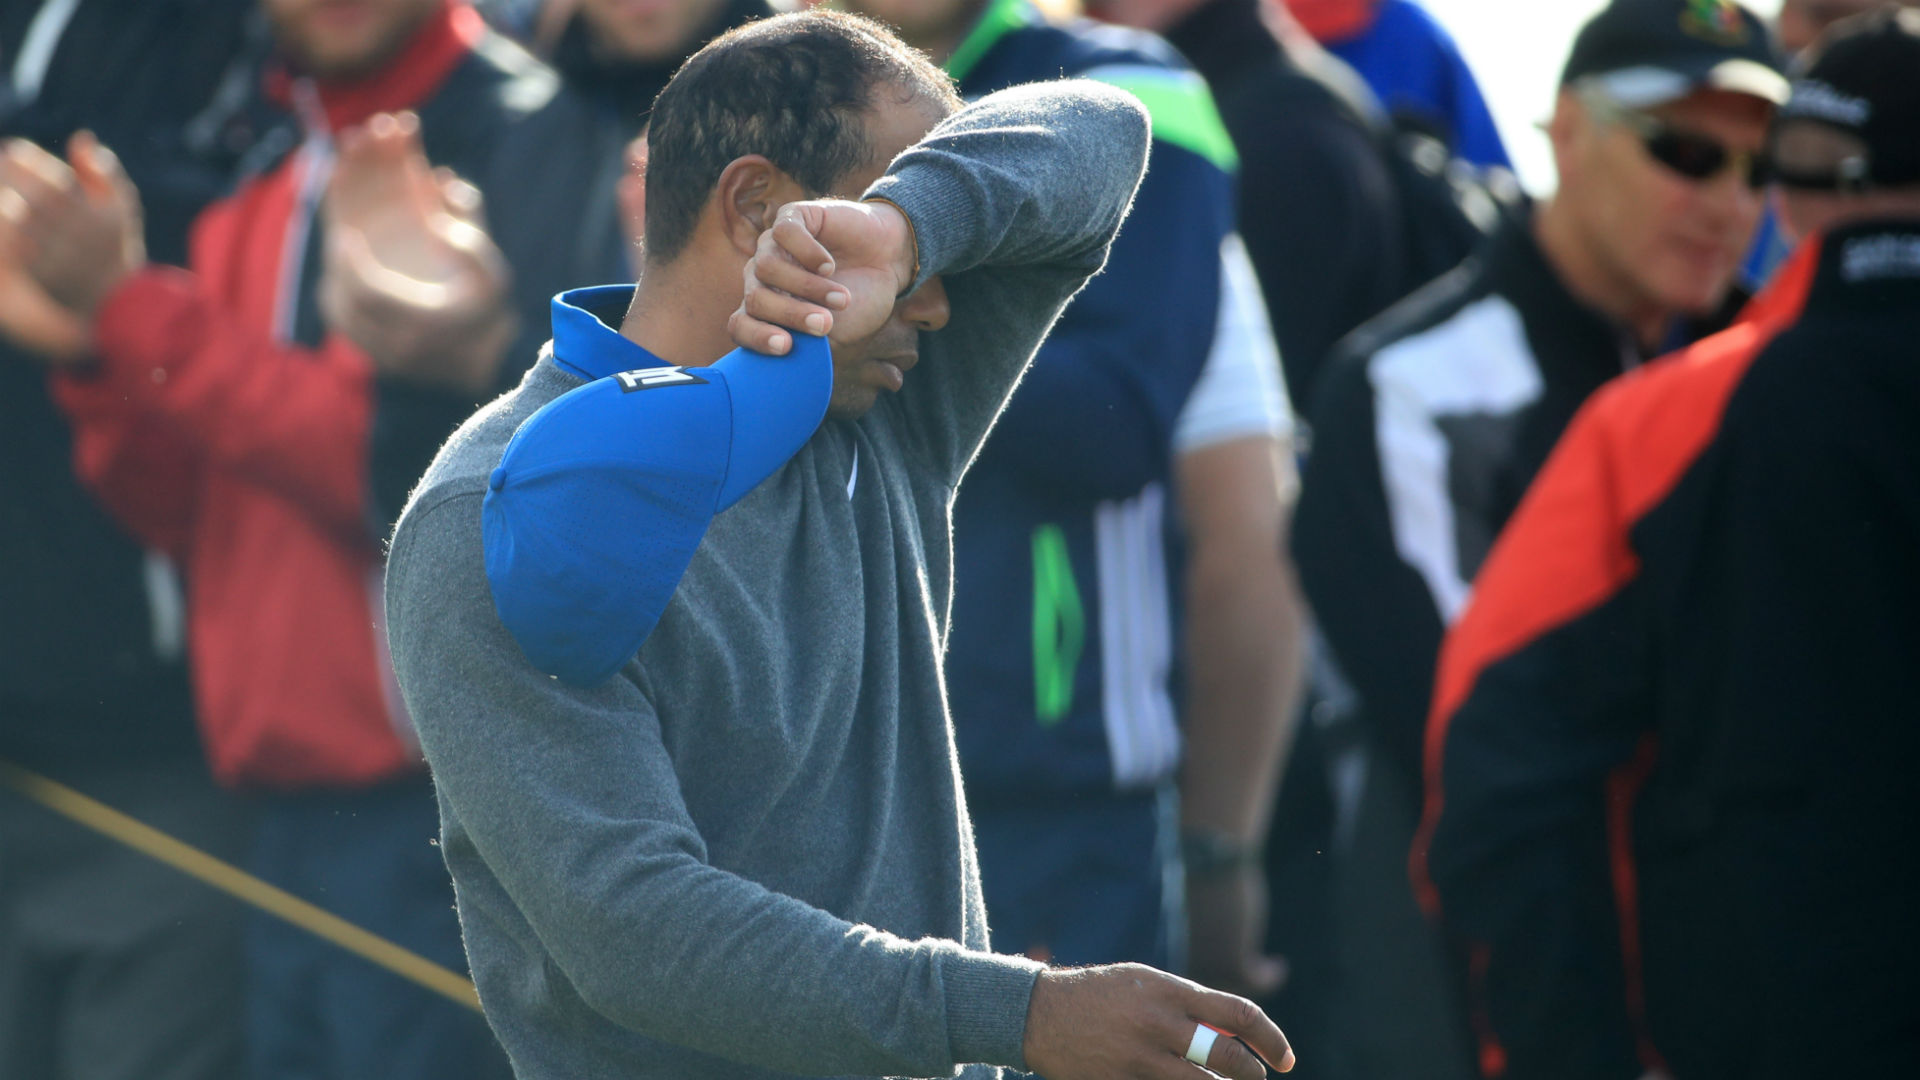 tiger woods u2019 score  round 1 results  highlights from 2019 british open